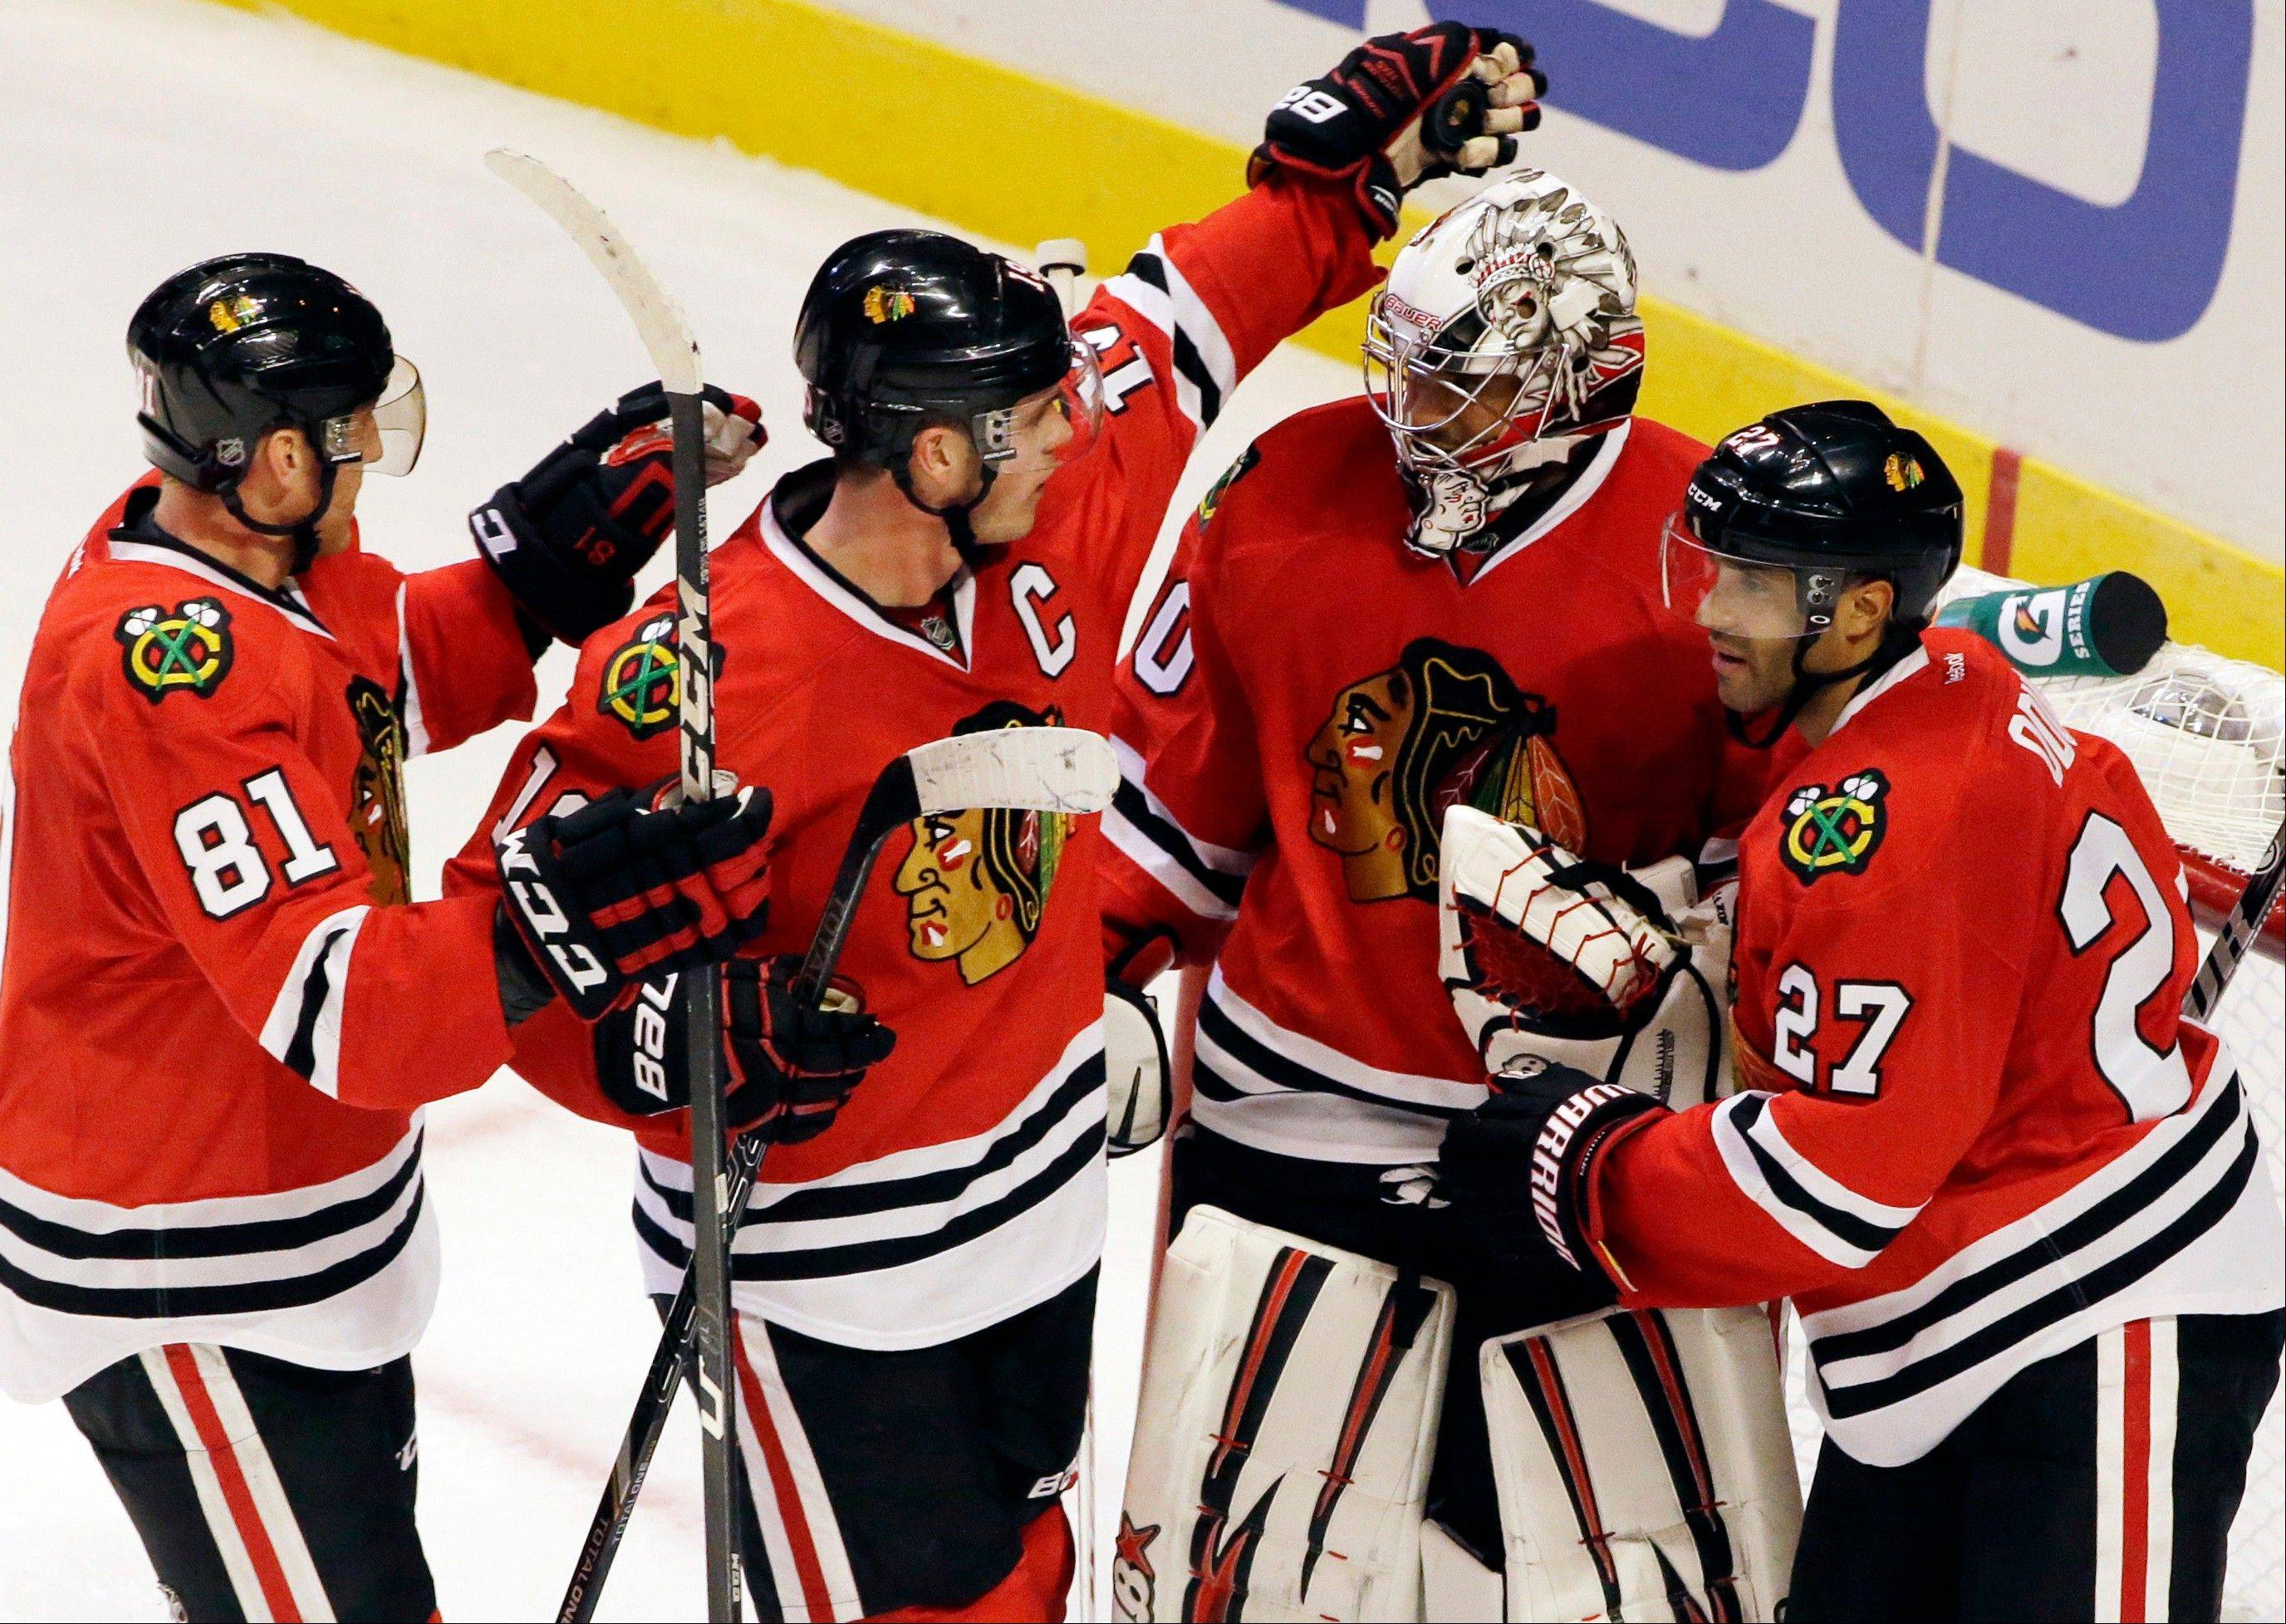 Chicago Blackhawks goalie Ray Emery, second from right, celebrates with Jonathan Toews (19), Marian Hossa (81) and Johnny Oduya (27) after the Blackhawks defeated the San Jose Sharks 2-1 during an NHL hockey game in Chicago, Friday, Feb. 22, 2013.